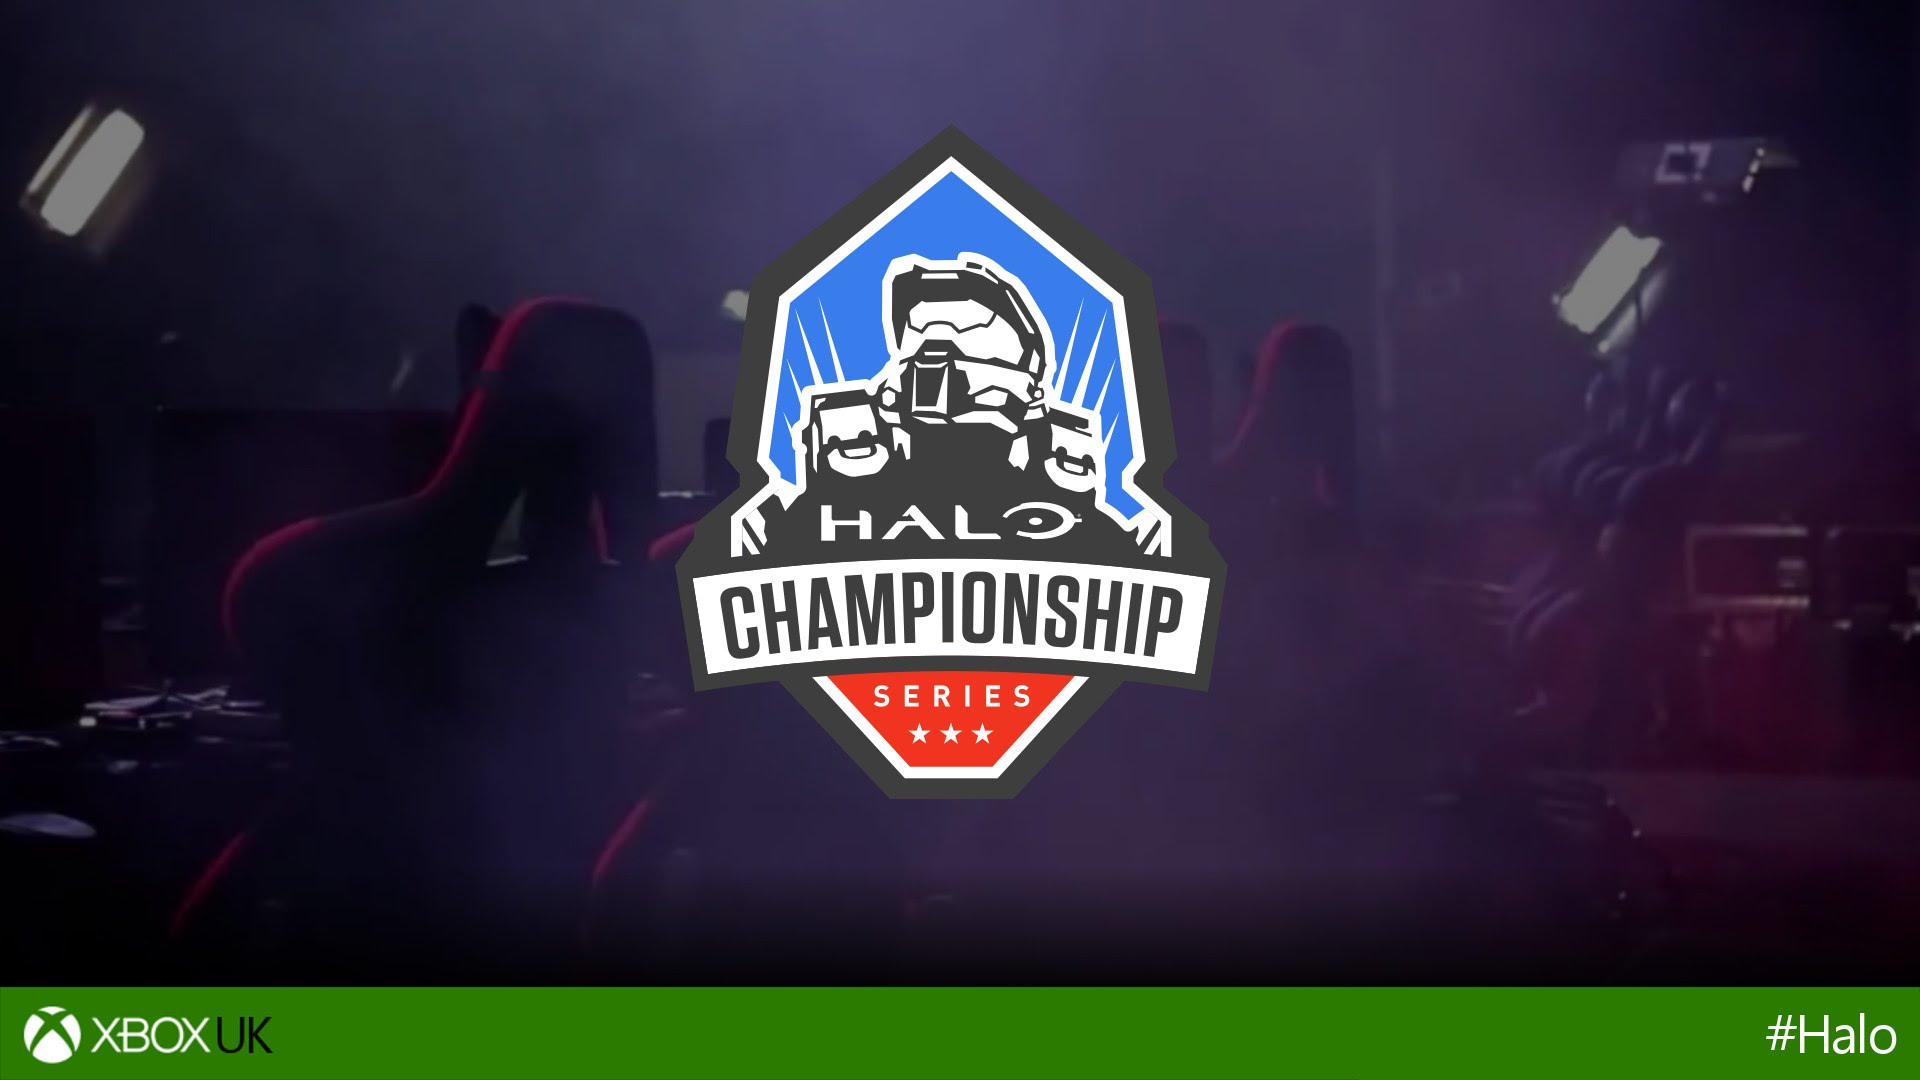 European final of the Halo Championship Series!